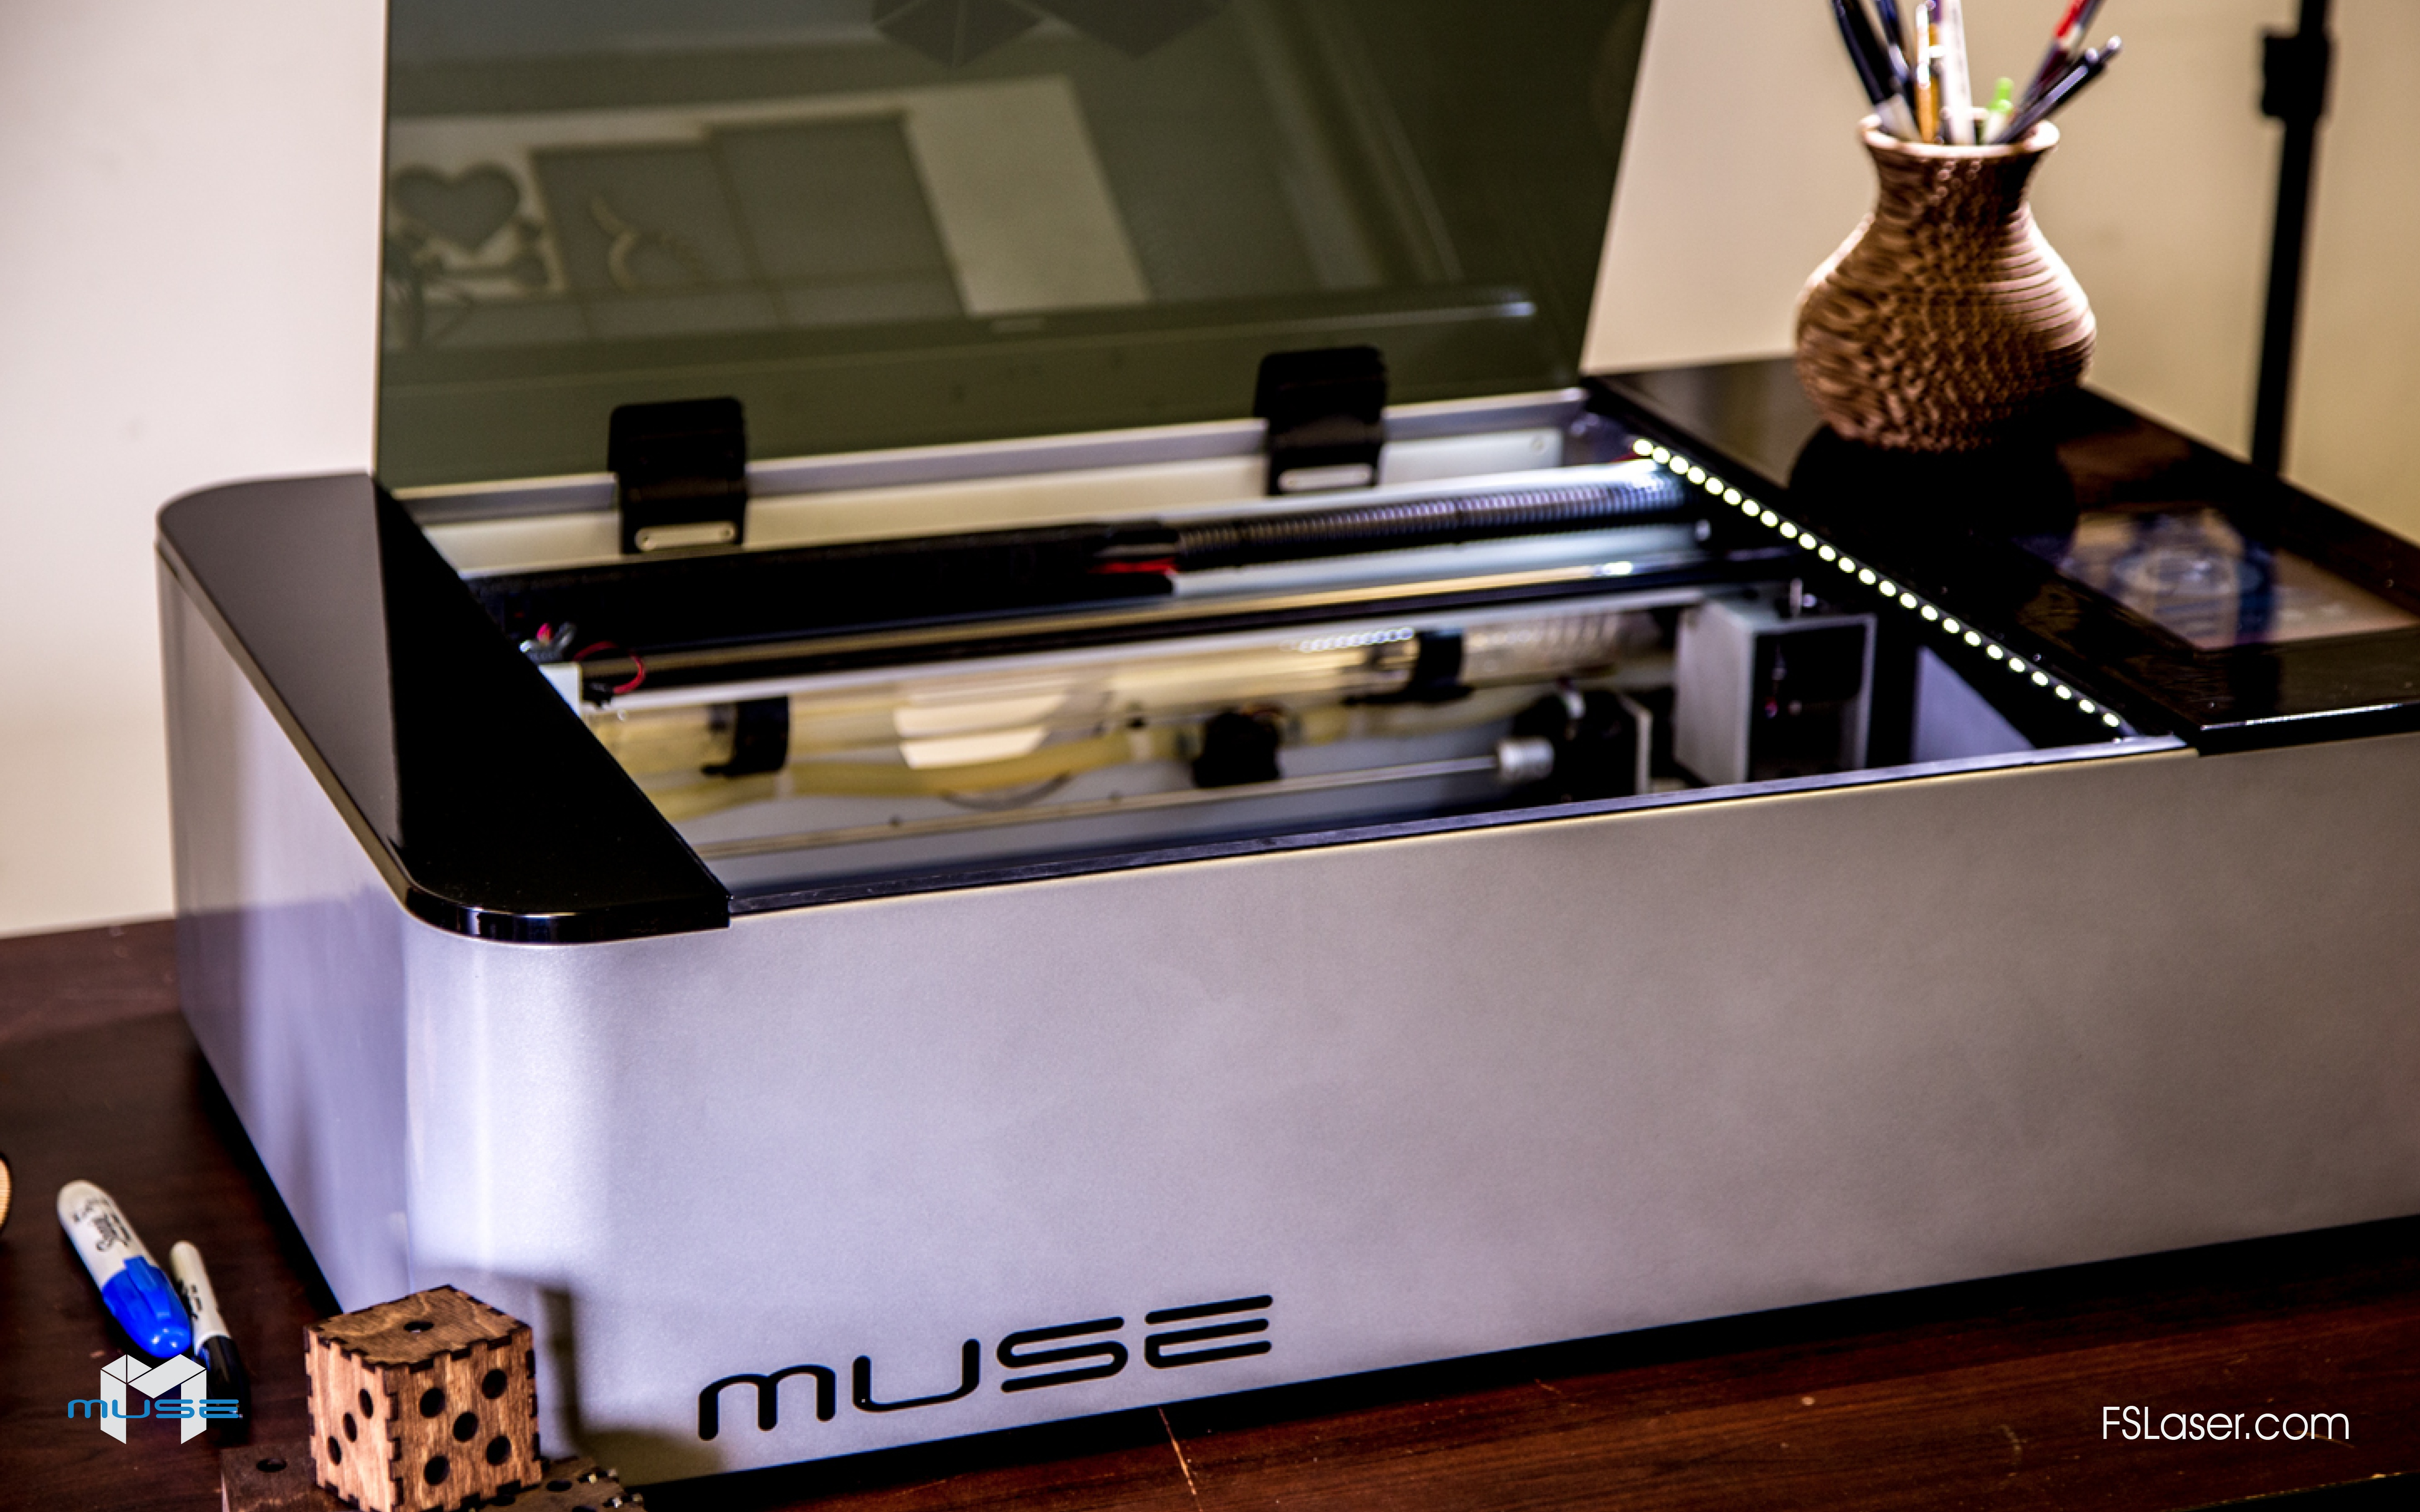 Muse Workflow: Laser Settings for Cutting